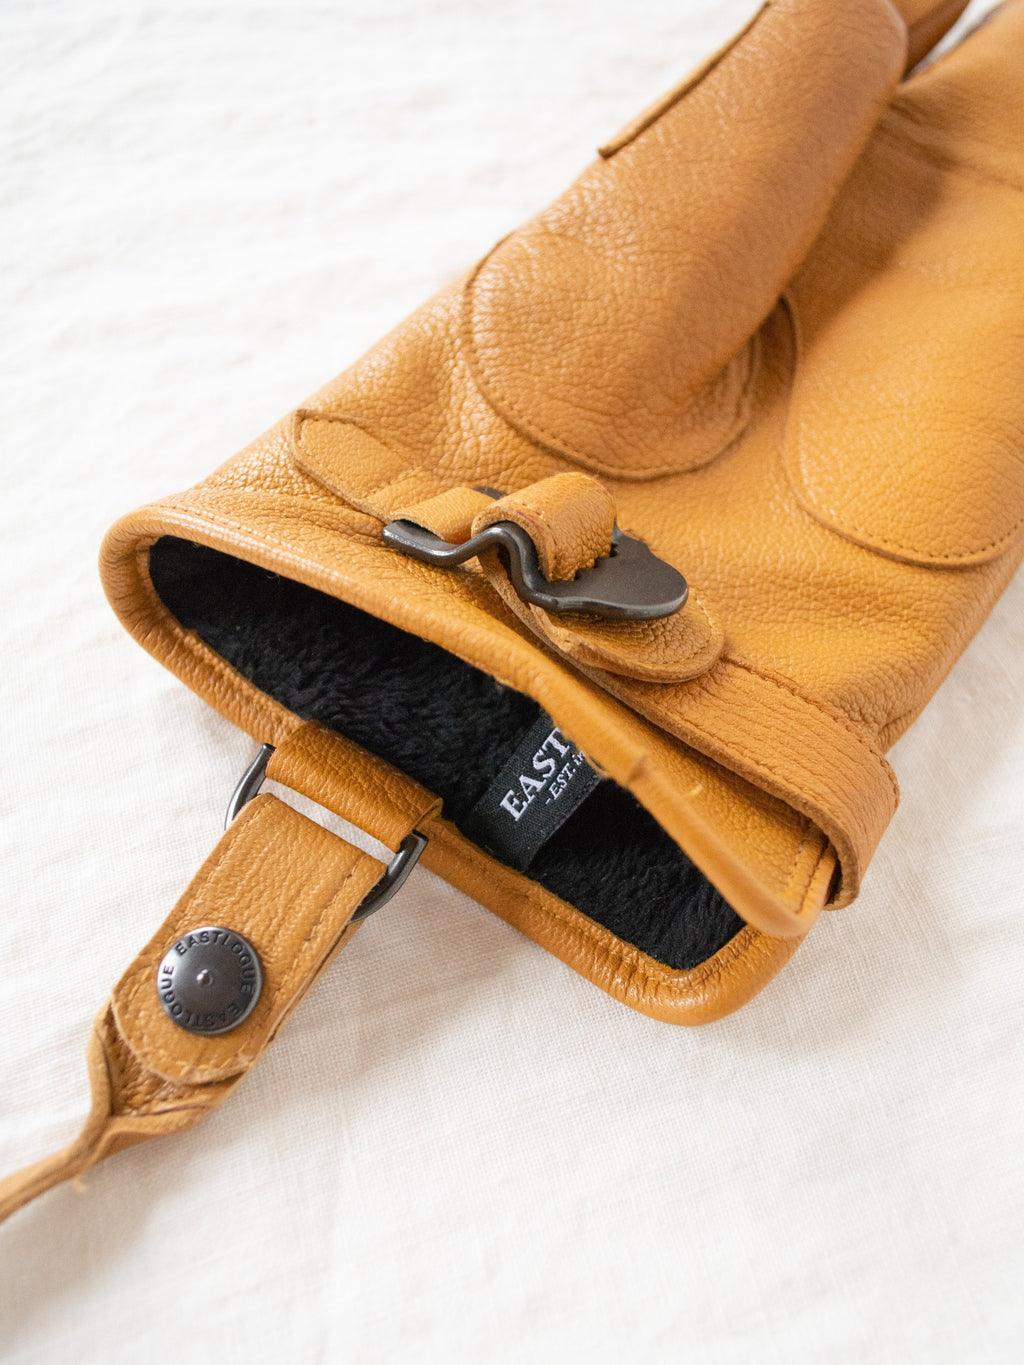 Namu Shop - Eastlogue Rifle Leather Gloves - Tan